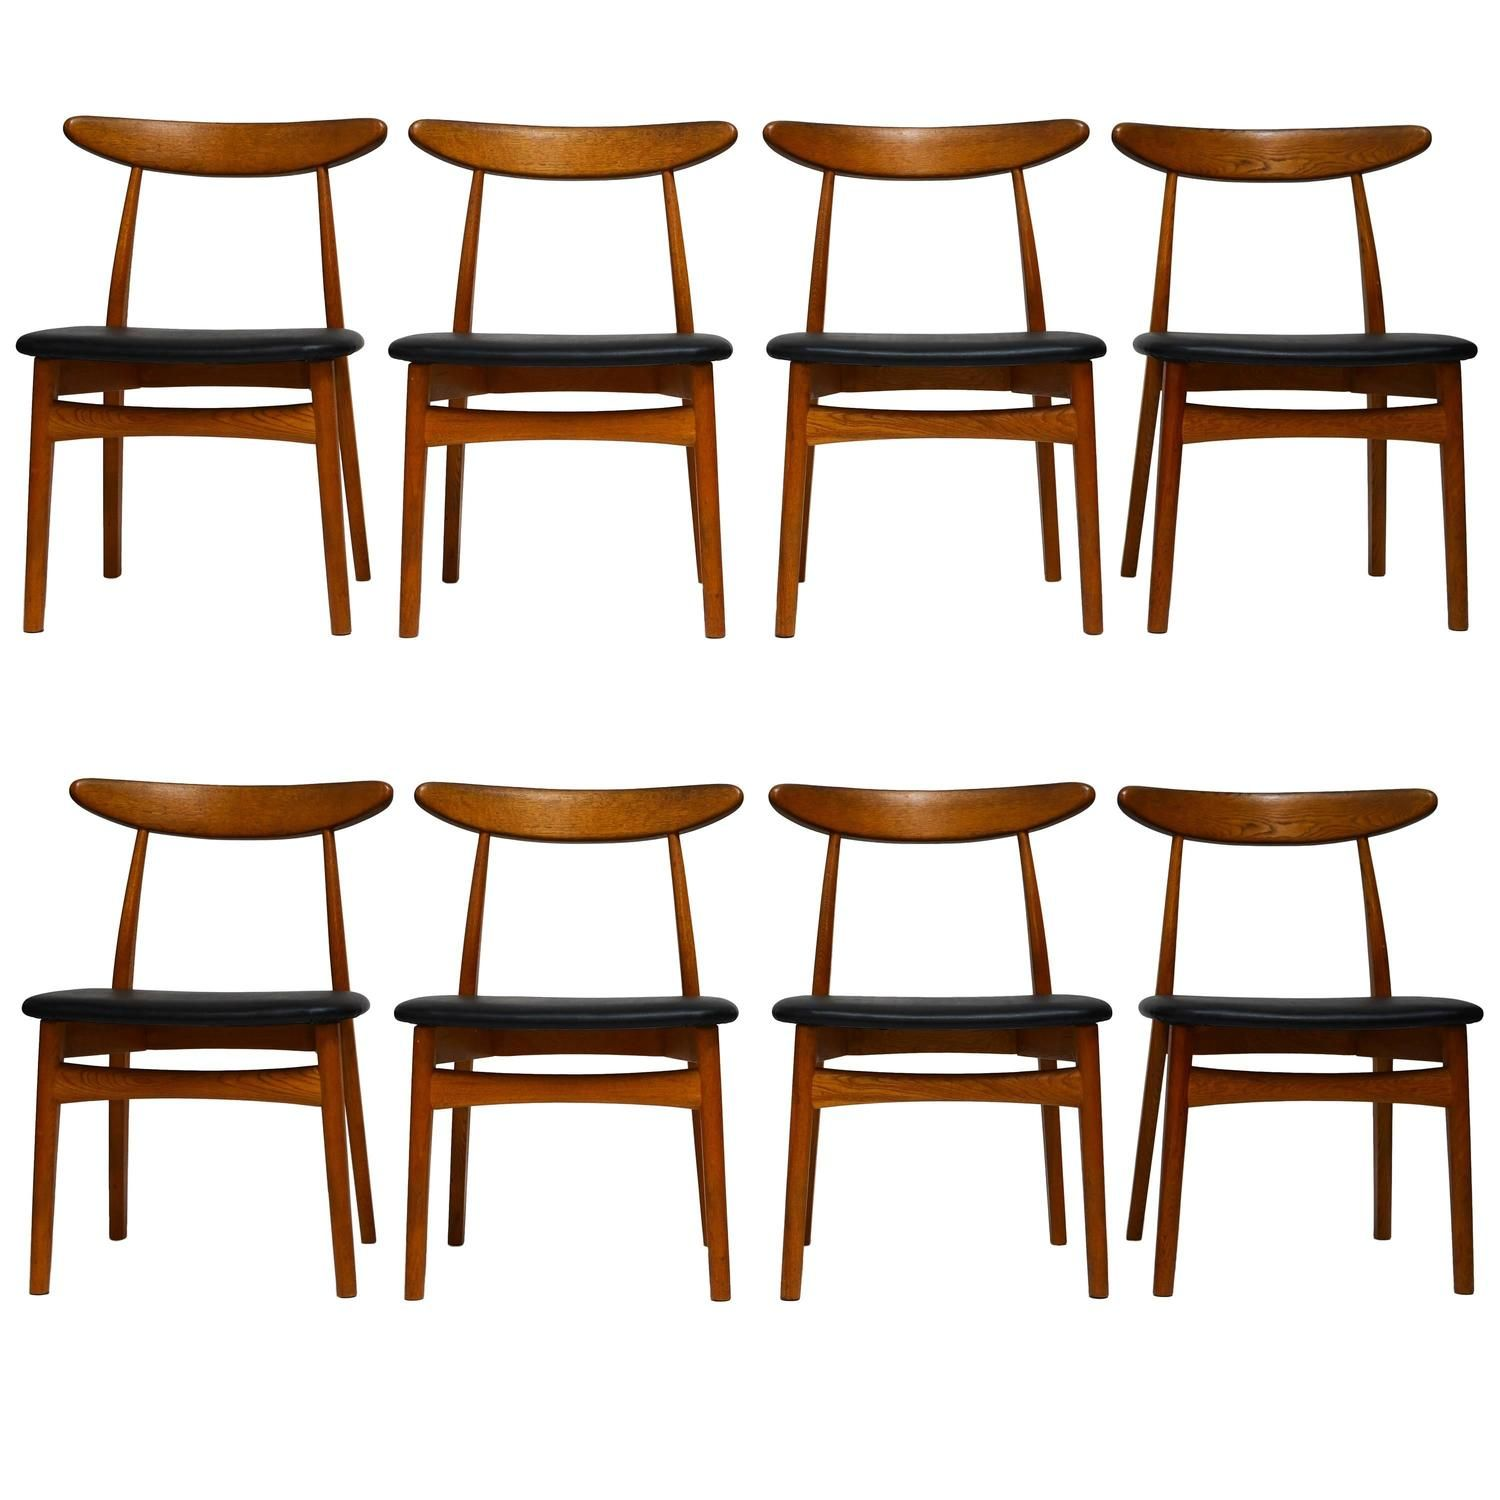 Japanese Modern Midcentury Dining Chairs